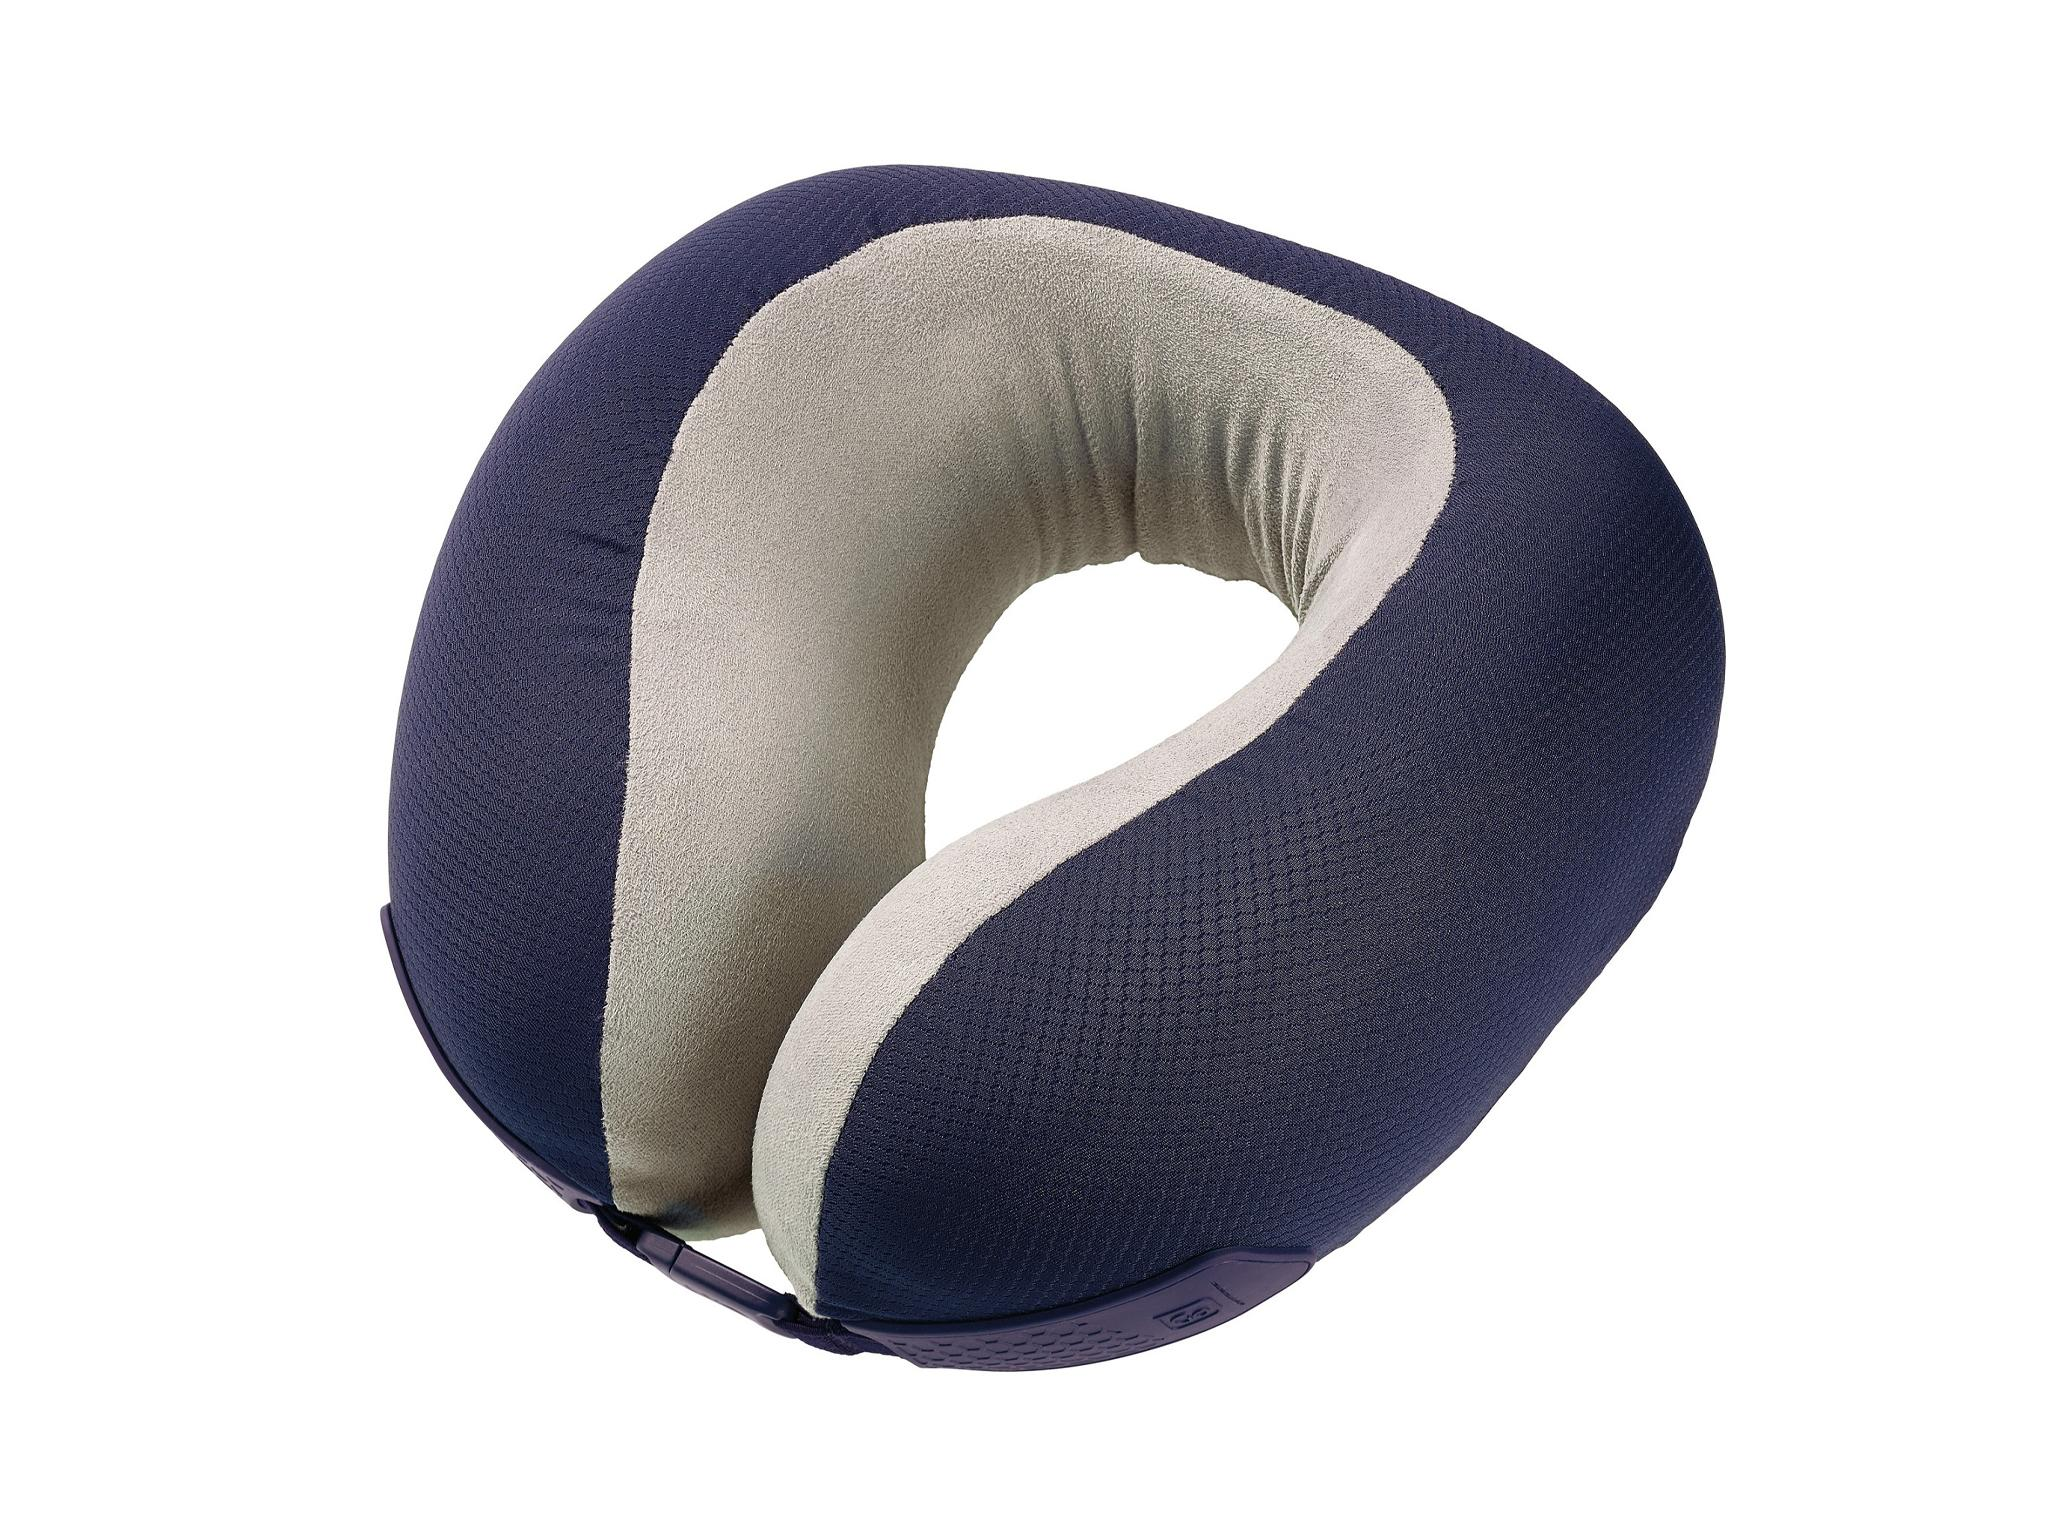 Best travel pillow 2020 that gives support while snoozing on